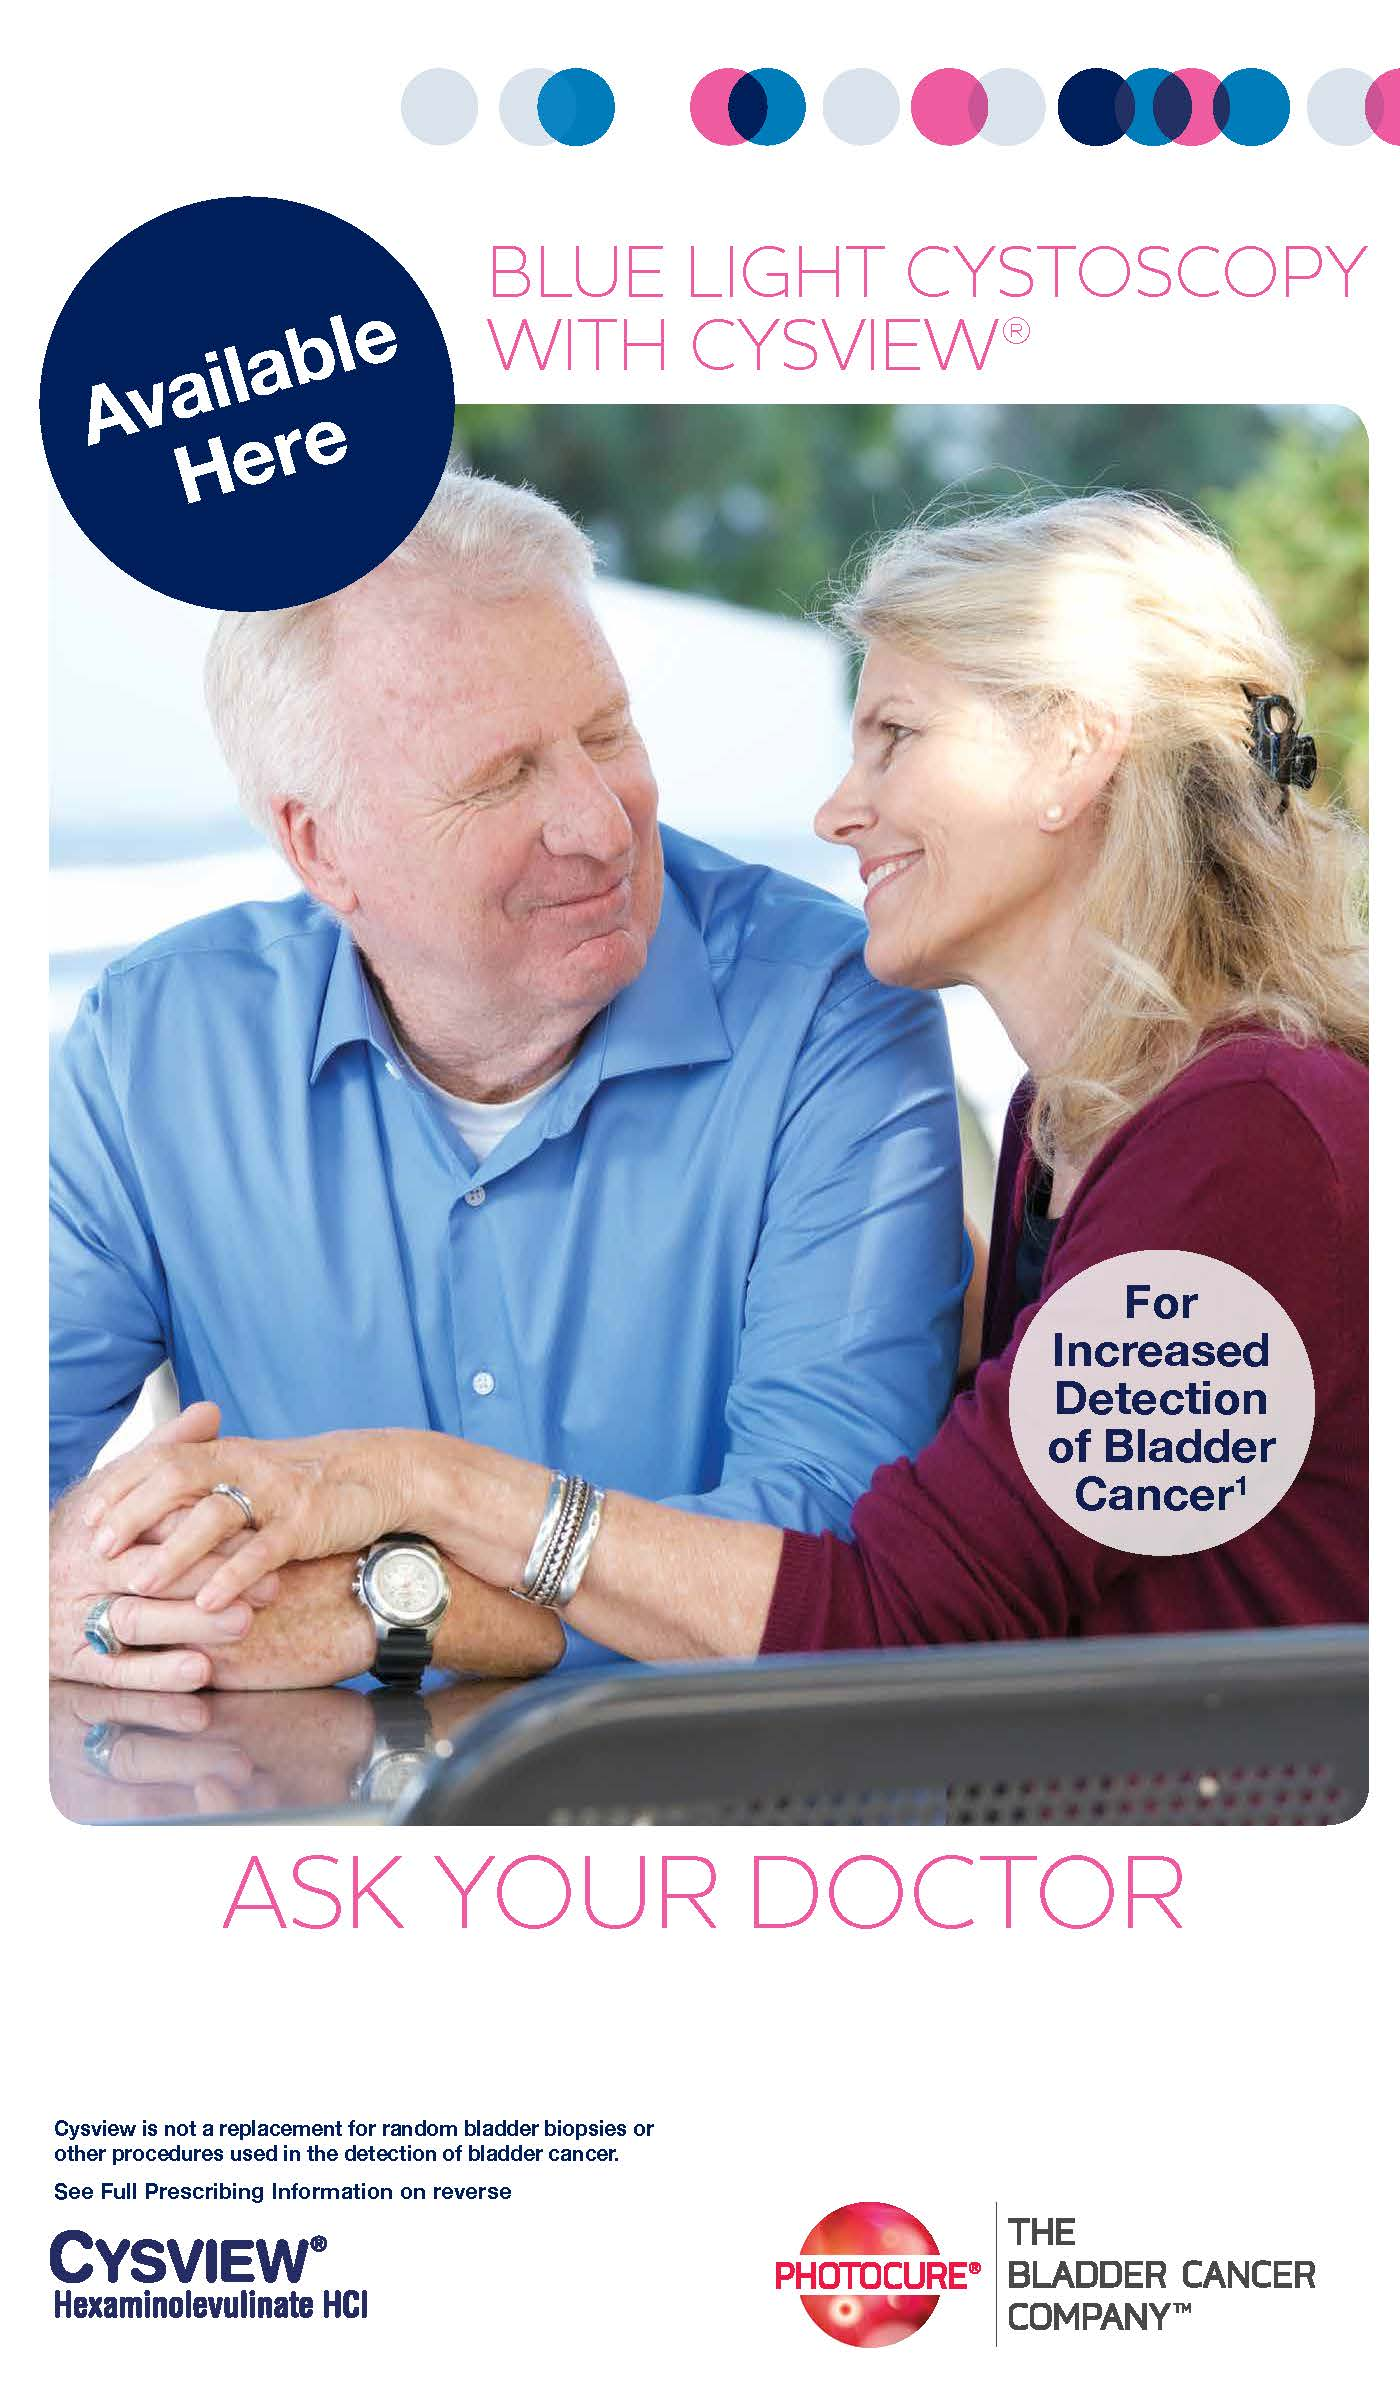 Bladder cancer patients need to know about Blue Light Cystoscopy with Cysview